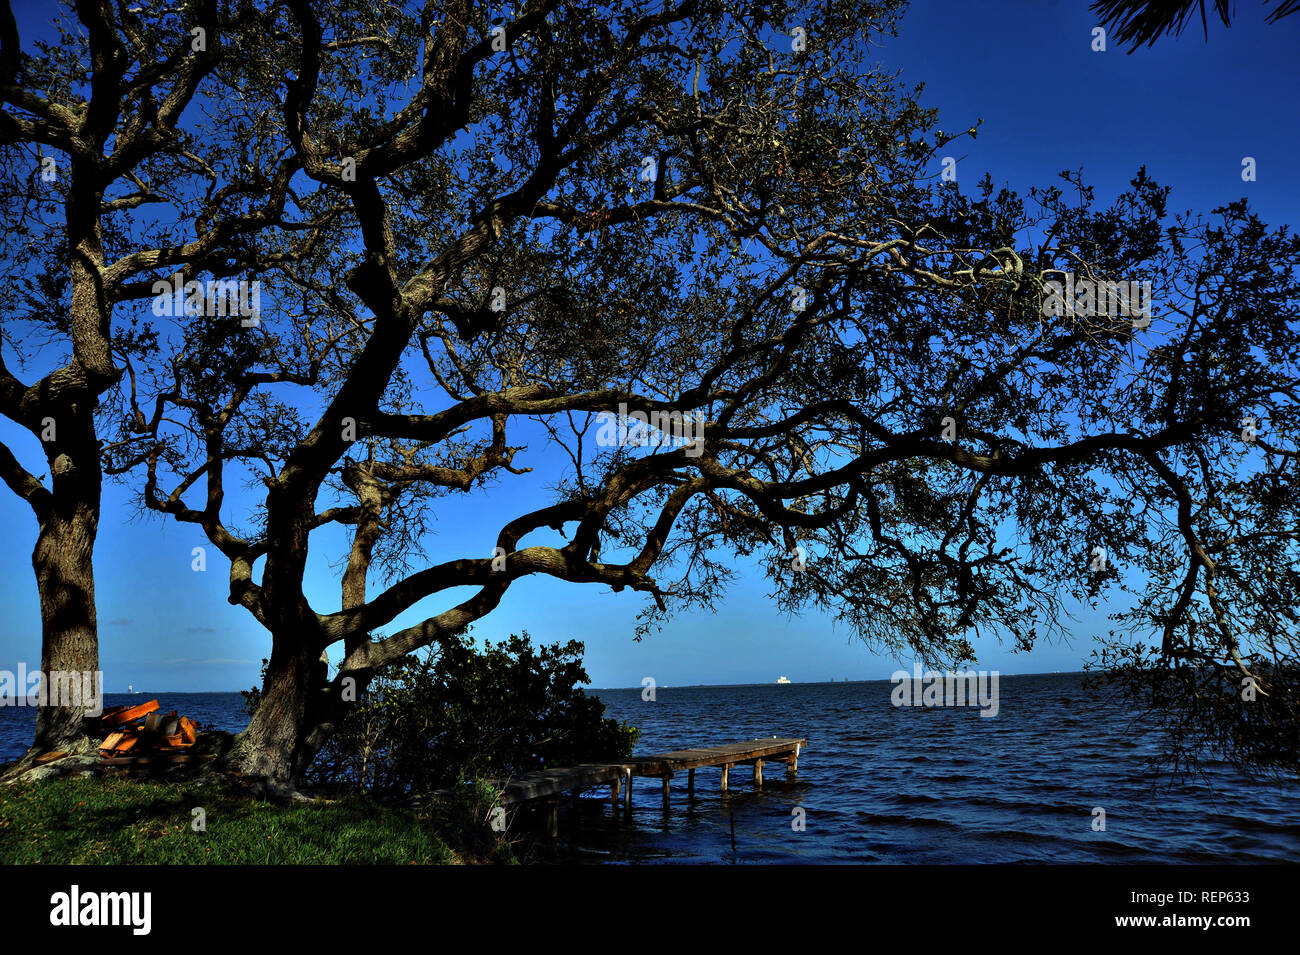 Shimmering Tree on River with Wooden Dock - Stock Image